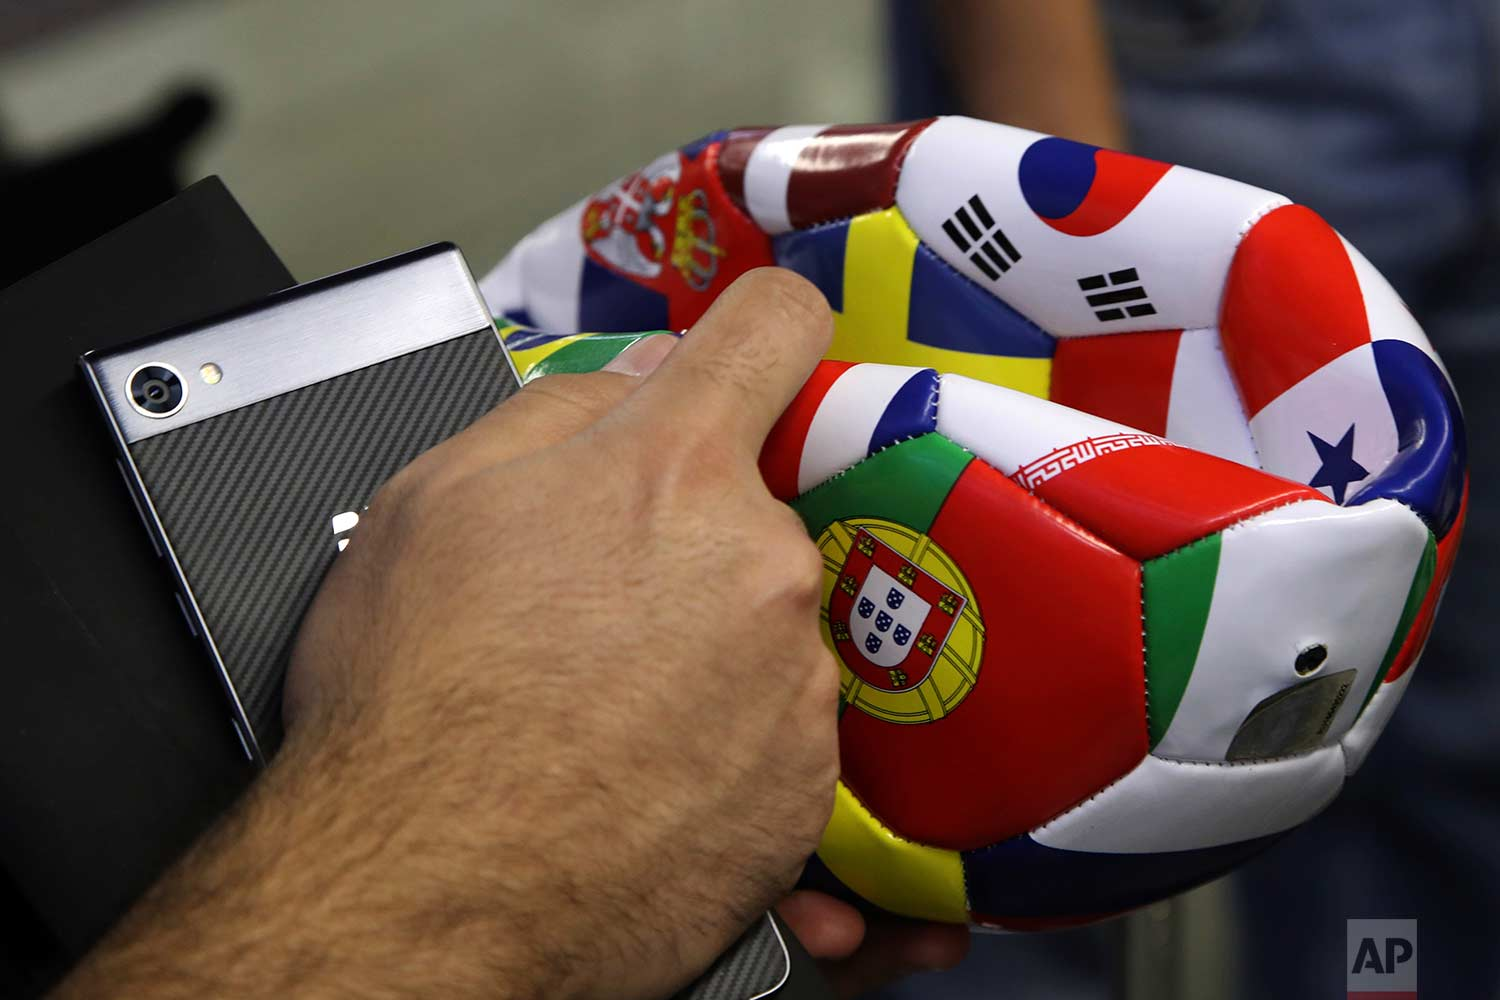 In this Saturday, June 16, 2018 photo, a supporter of Portugal holds a ball he bought at an airport shop at Sochi International Airport in Sochi, Russia. (AP Photo/Thanassis Stavrakis)